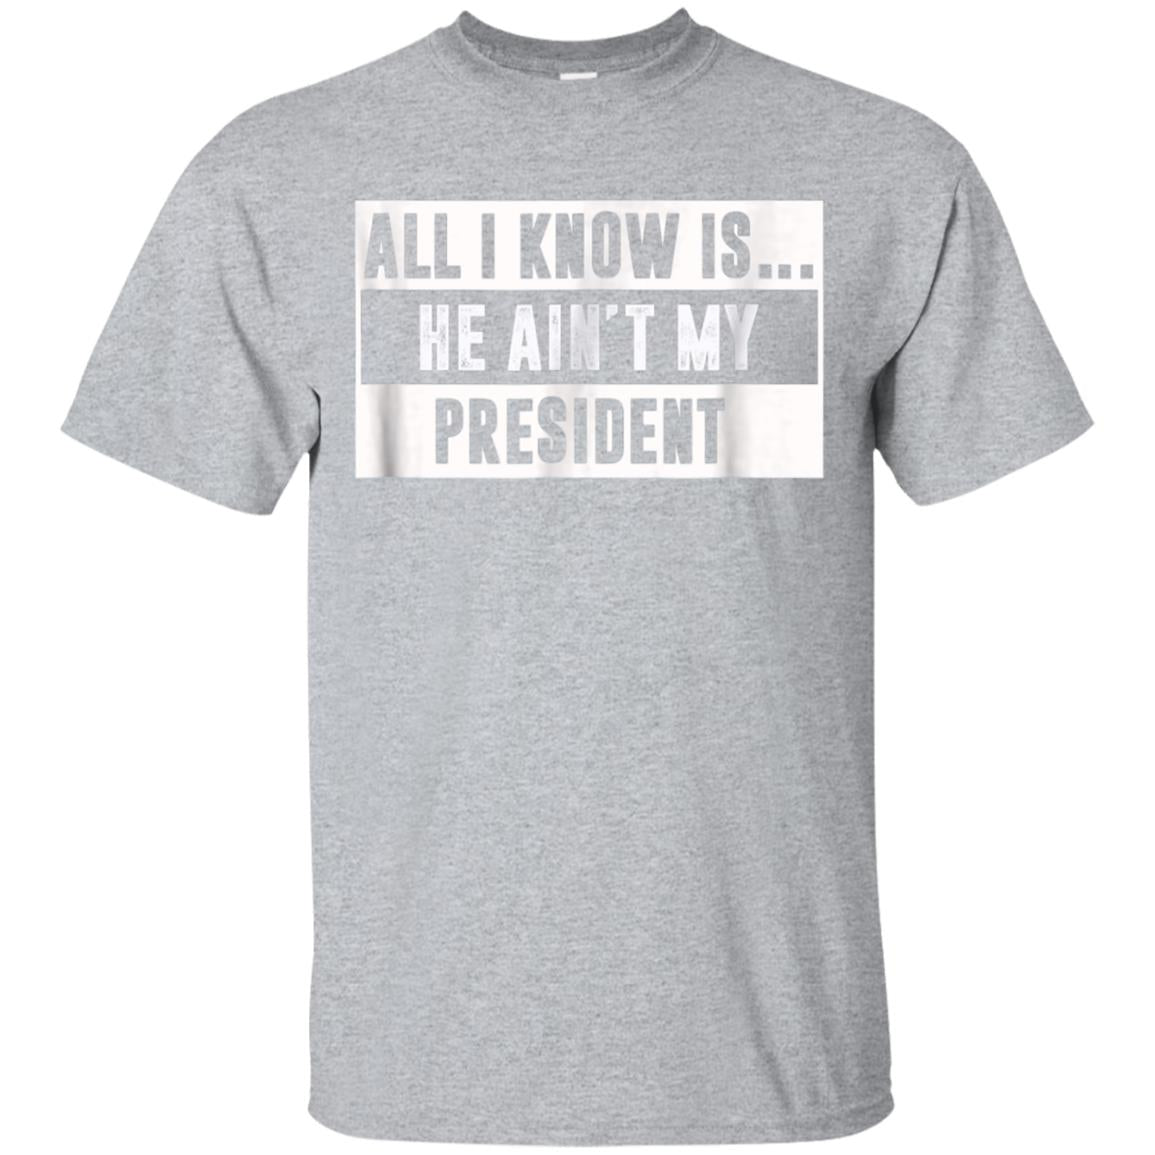 ALL I KNOW IS.. HE AINT MY PRESIDENT T-Shirt 99promocode